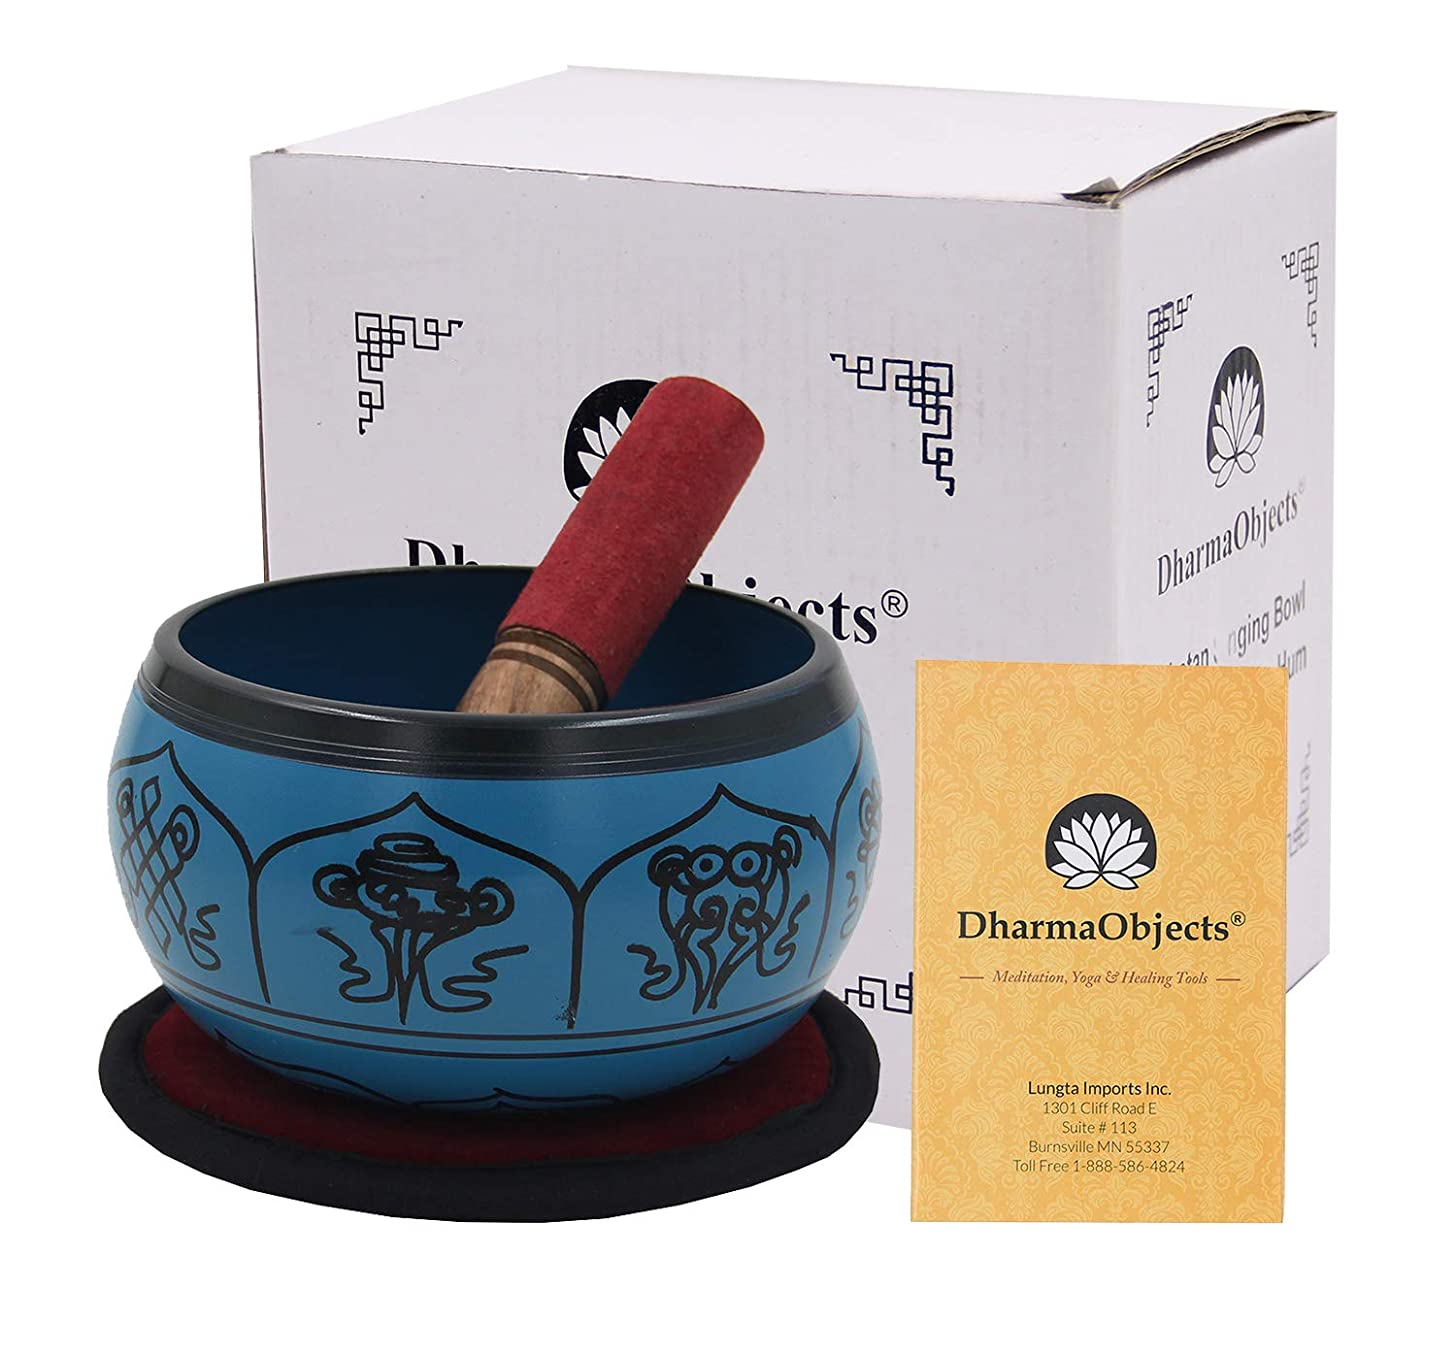 DharmaObjects Yoga Meditation 6 Inches 8 Lucky Symbols Singing Bowl/Cushion/Leather Mallet Gift Set (Turquoise)